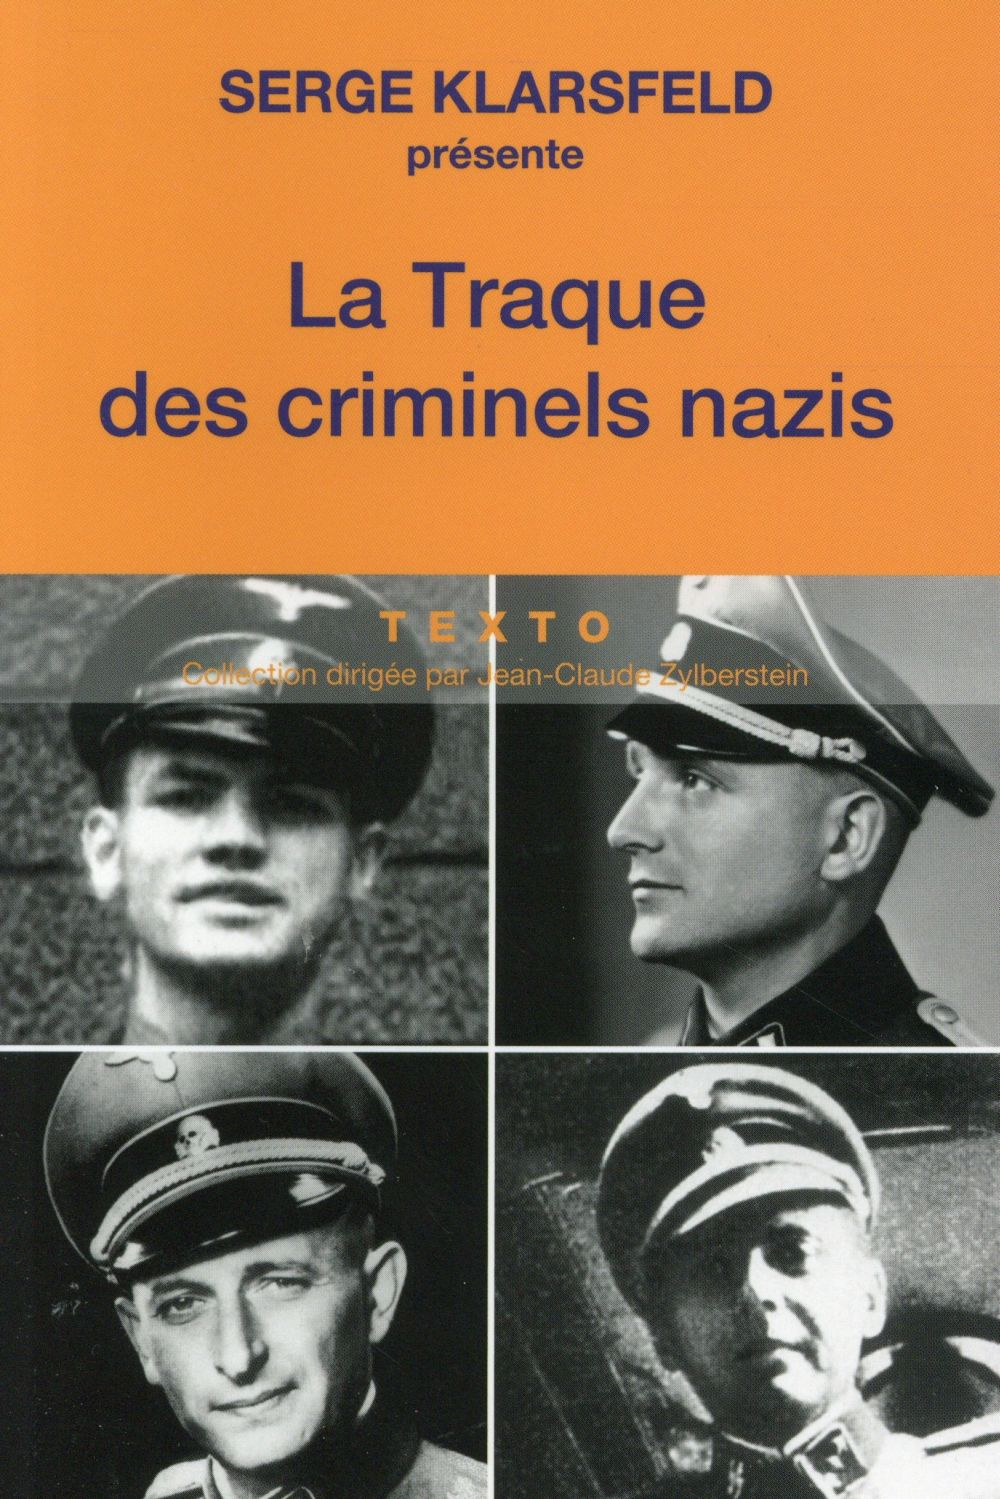 LA TRAQUE DES CRIMINELS NAZIS  Tallandier